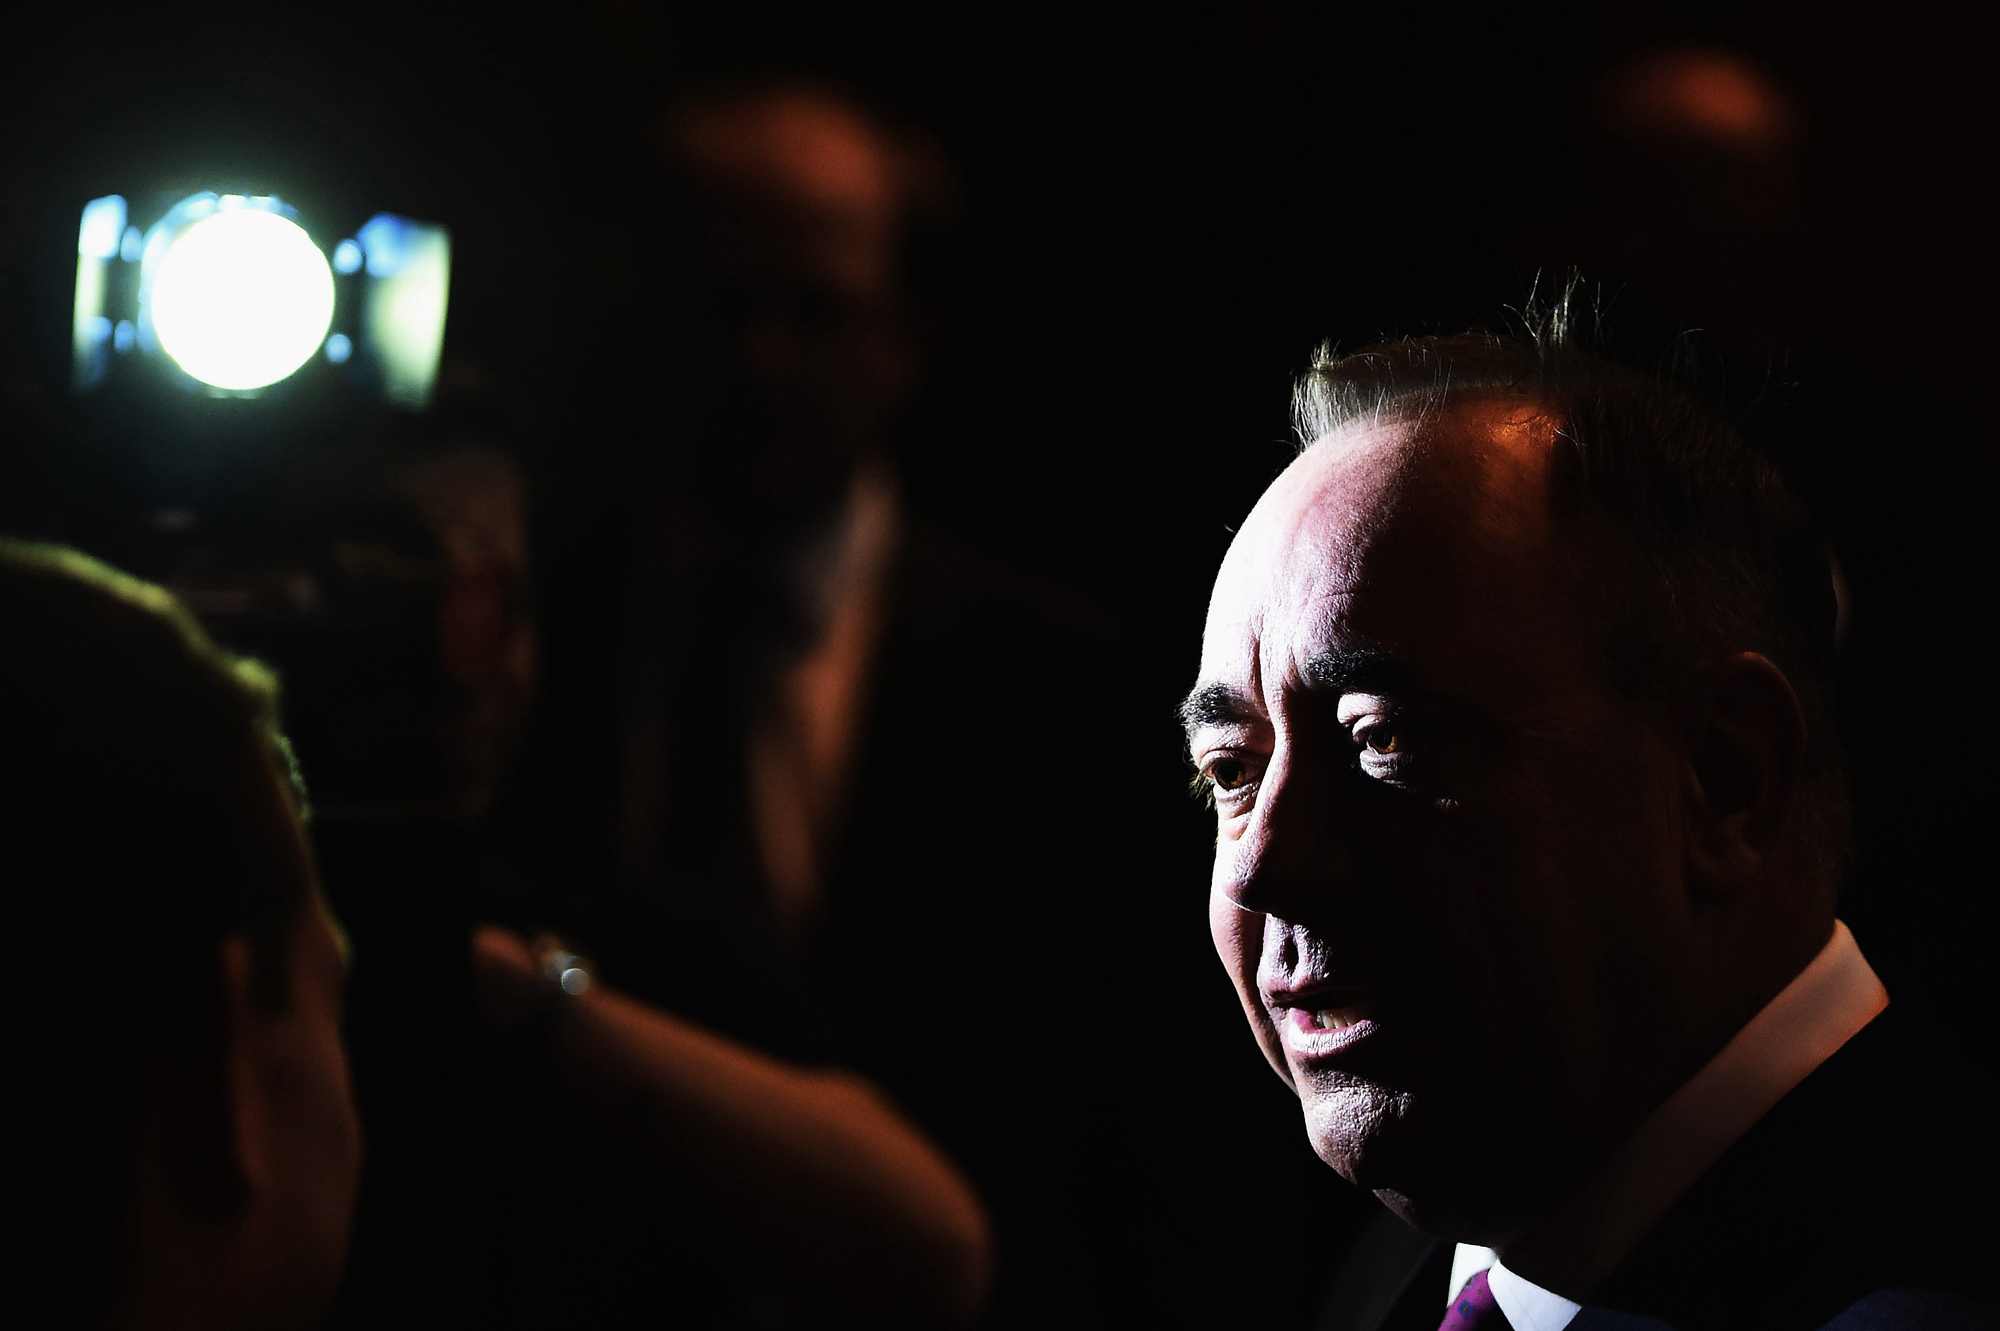 Alex Salmond, First Minister of Scotland, talks the media after debating with Alistair Darling chairman of Better Together in a televised event from the Royal Conservatoire of Scotland on August 5, 2014 in Glasgow, Scotland.